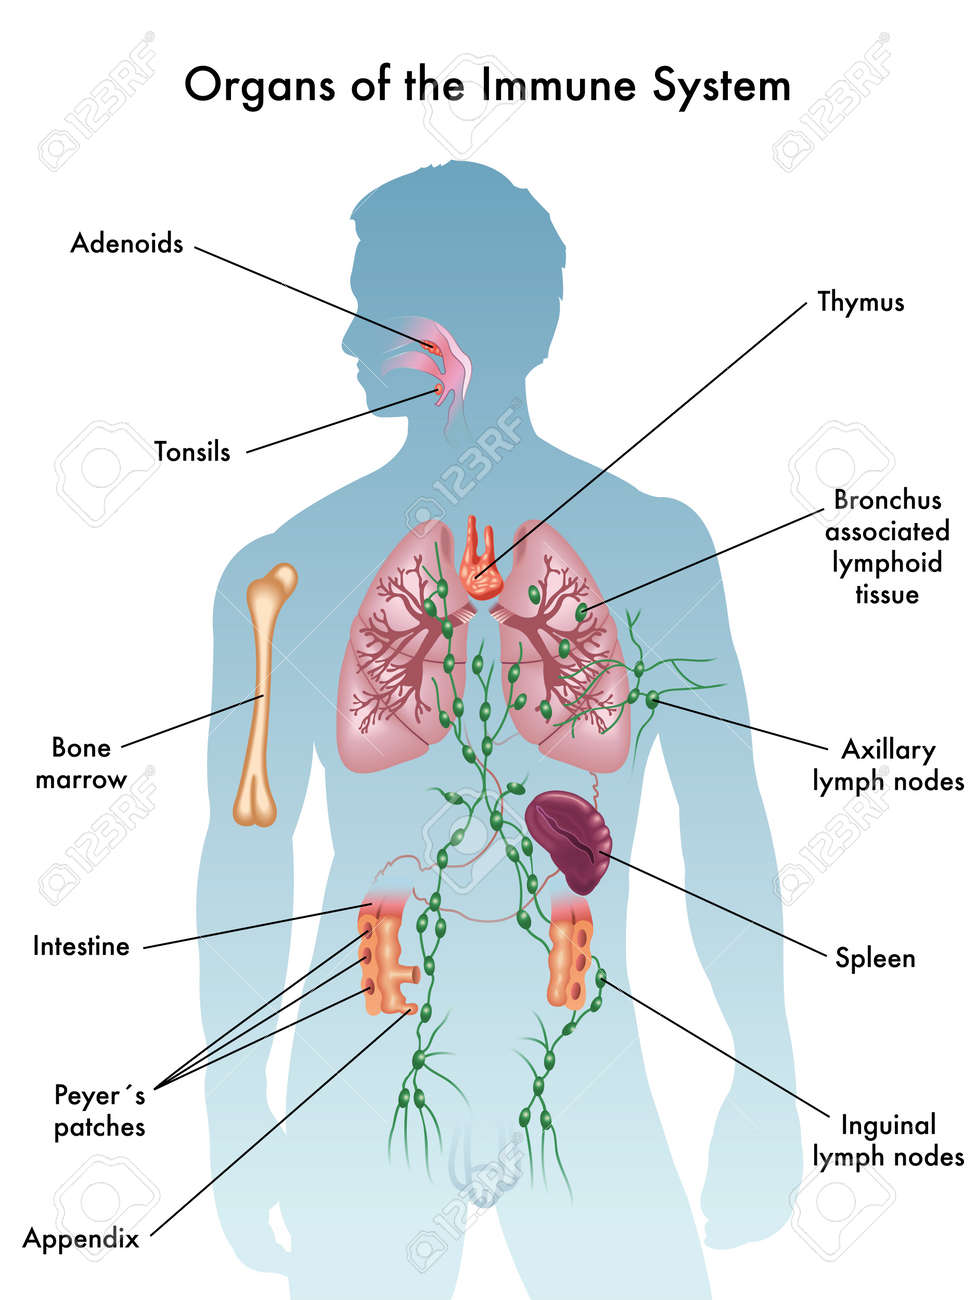 organs of the immune system - 66461199